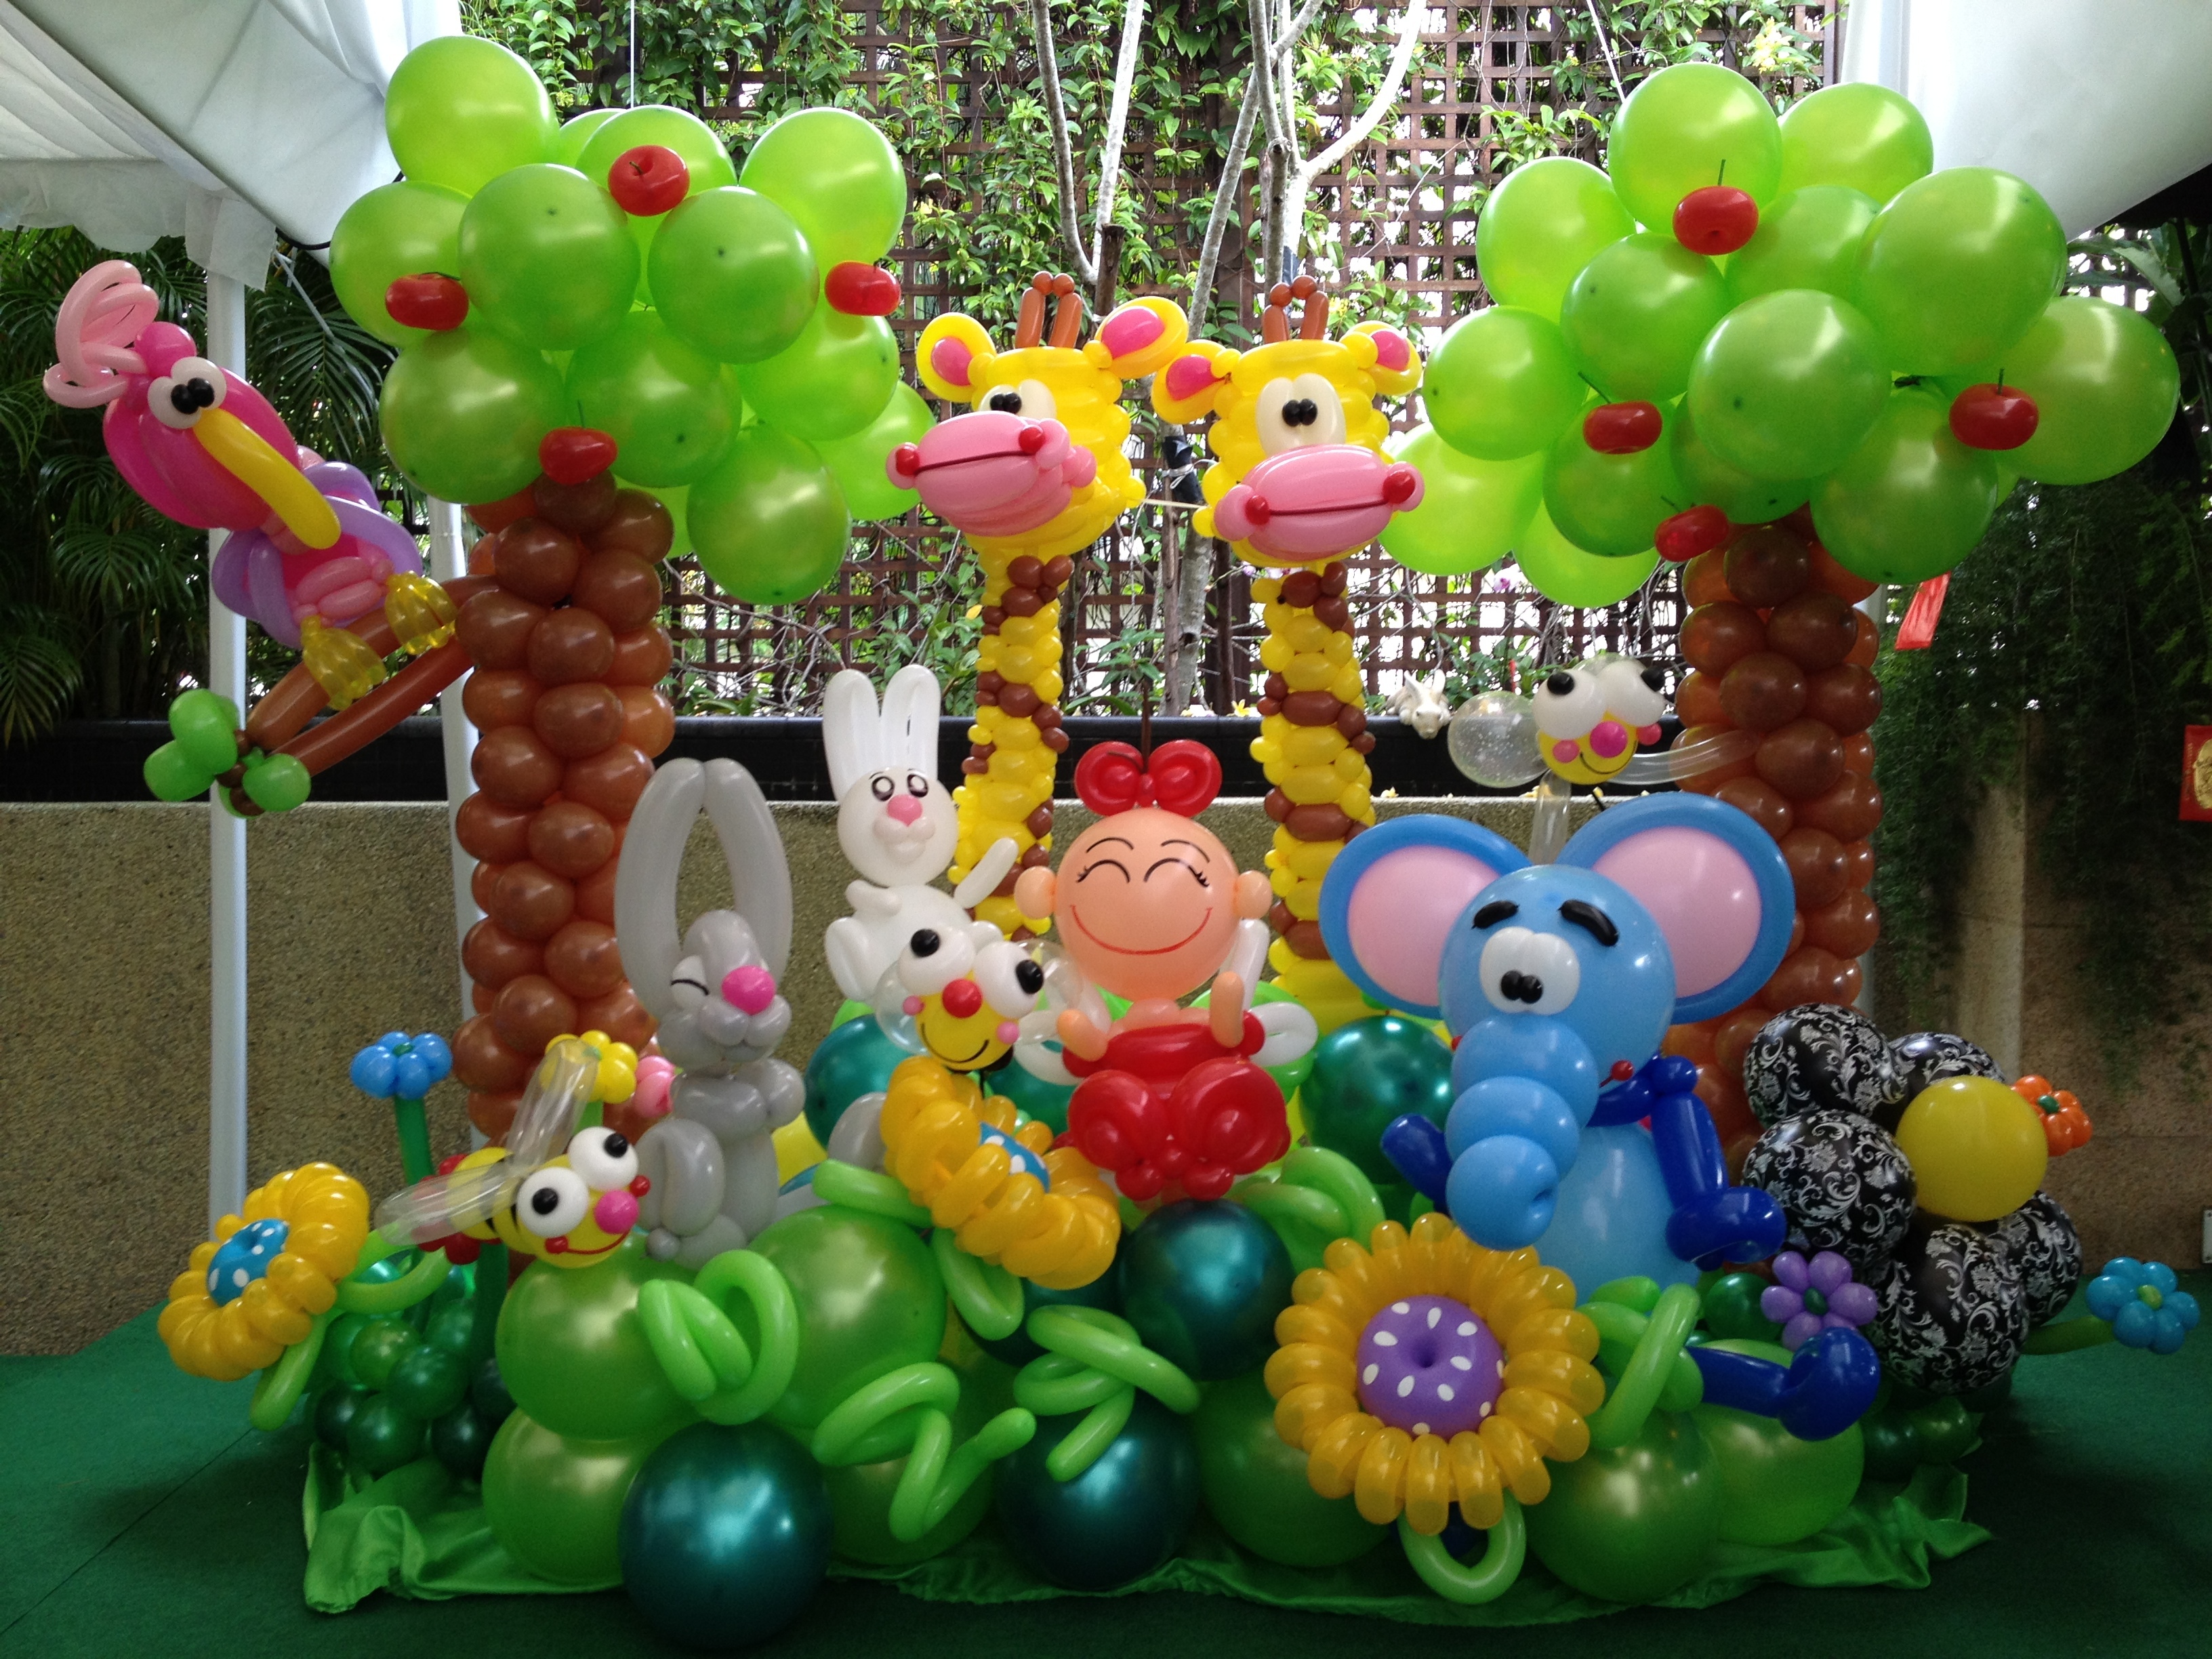 Premium garden balloons backdrop display that balloons for Balloon decoration designs